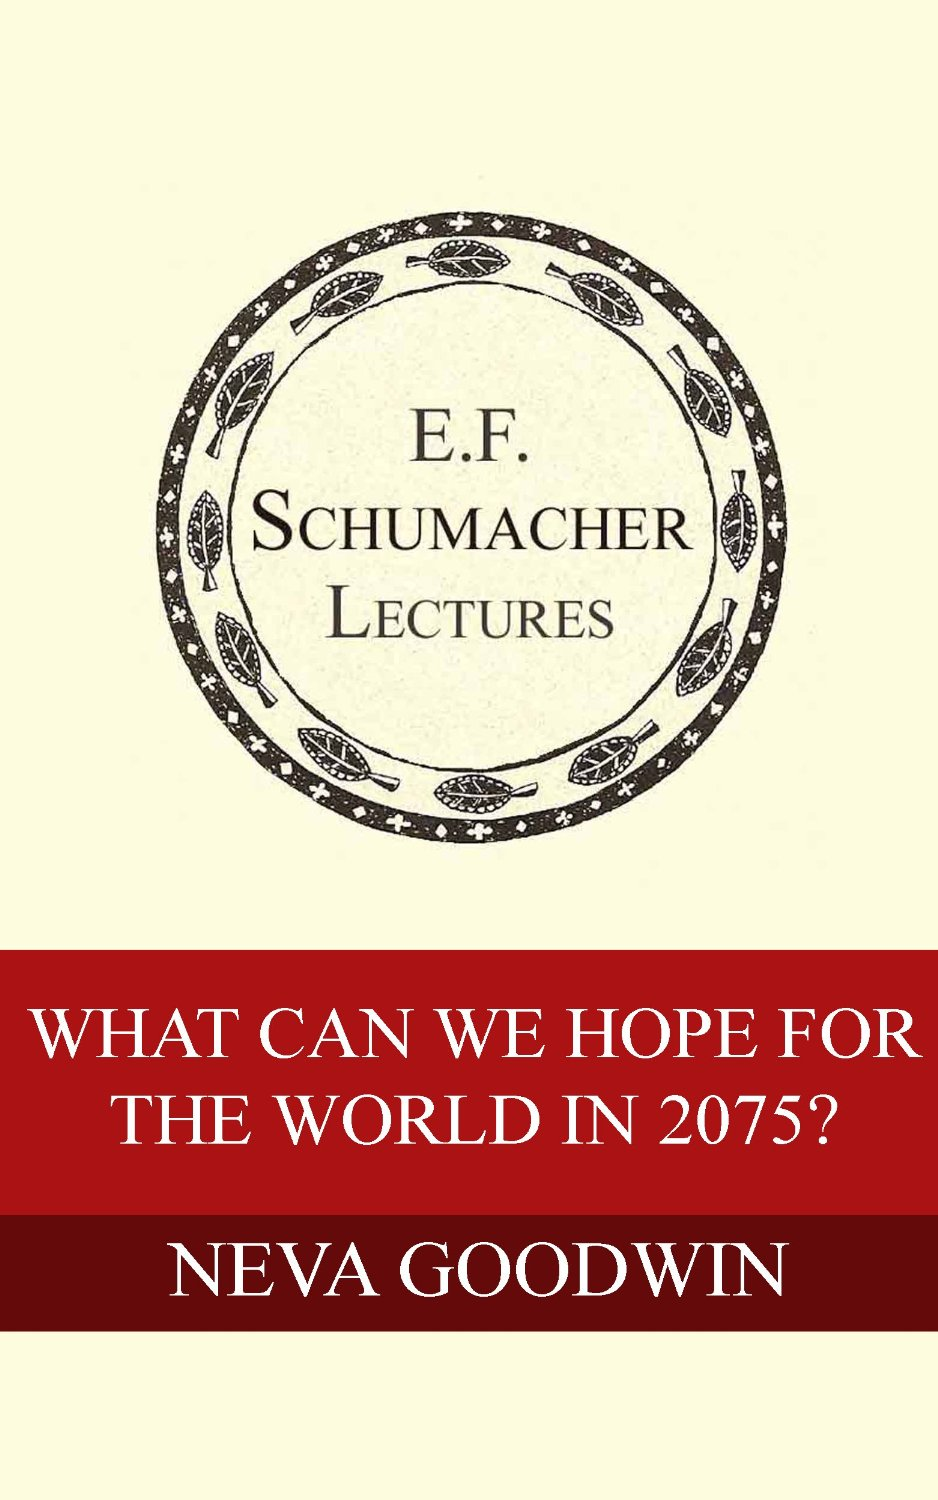 What Can We Hope for the World in 2075? (Neva Goodwin, Hildegarde Hannum)